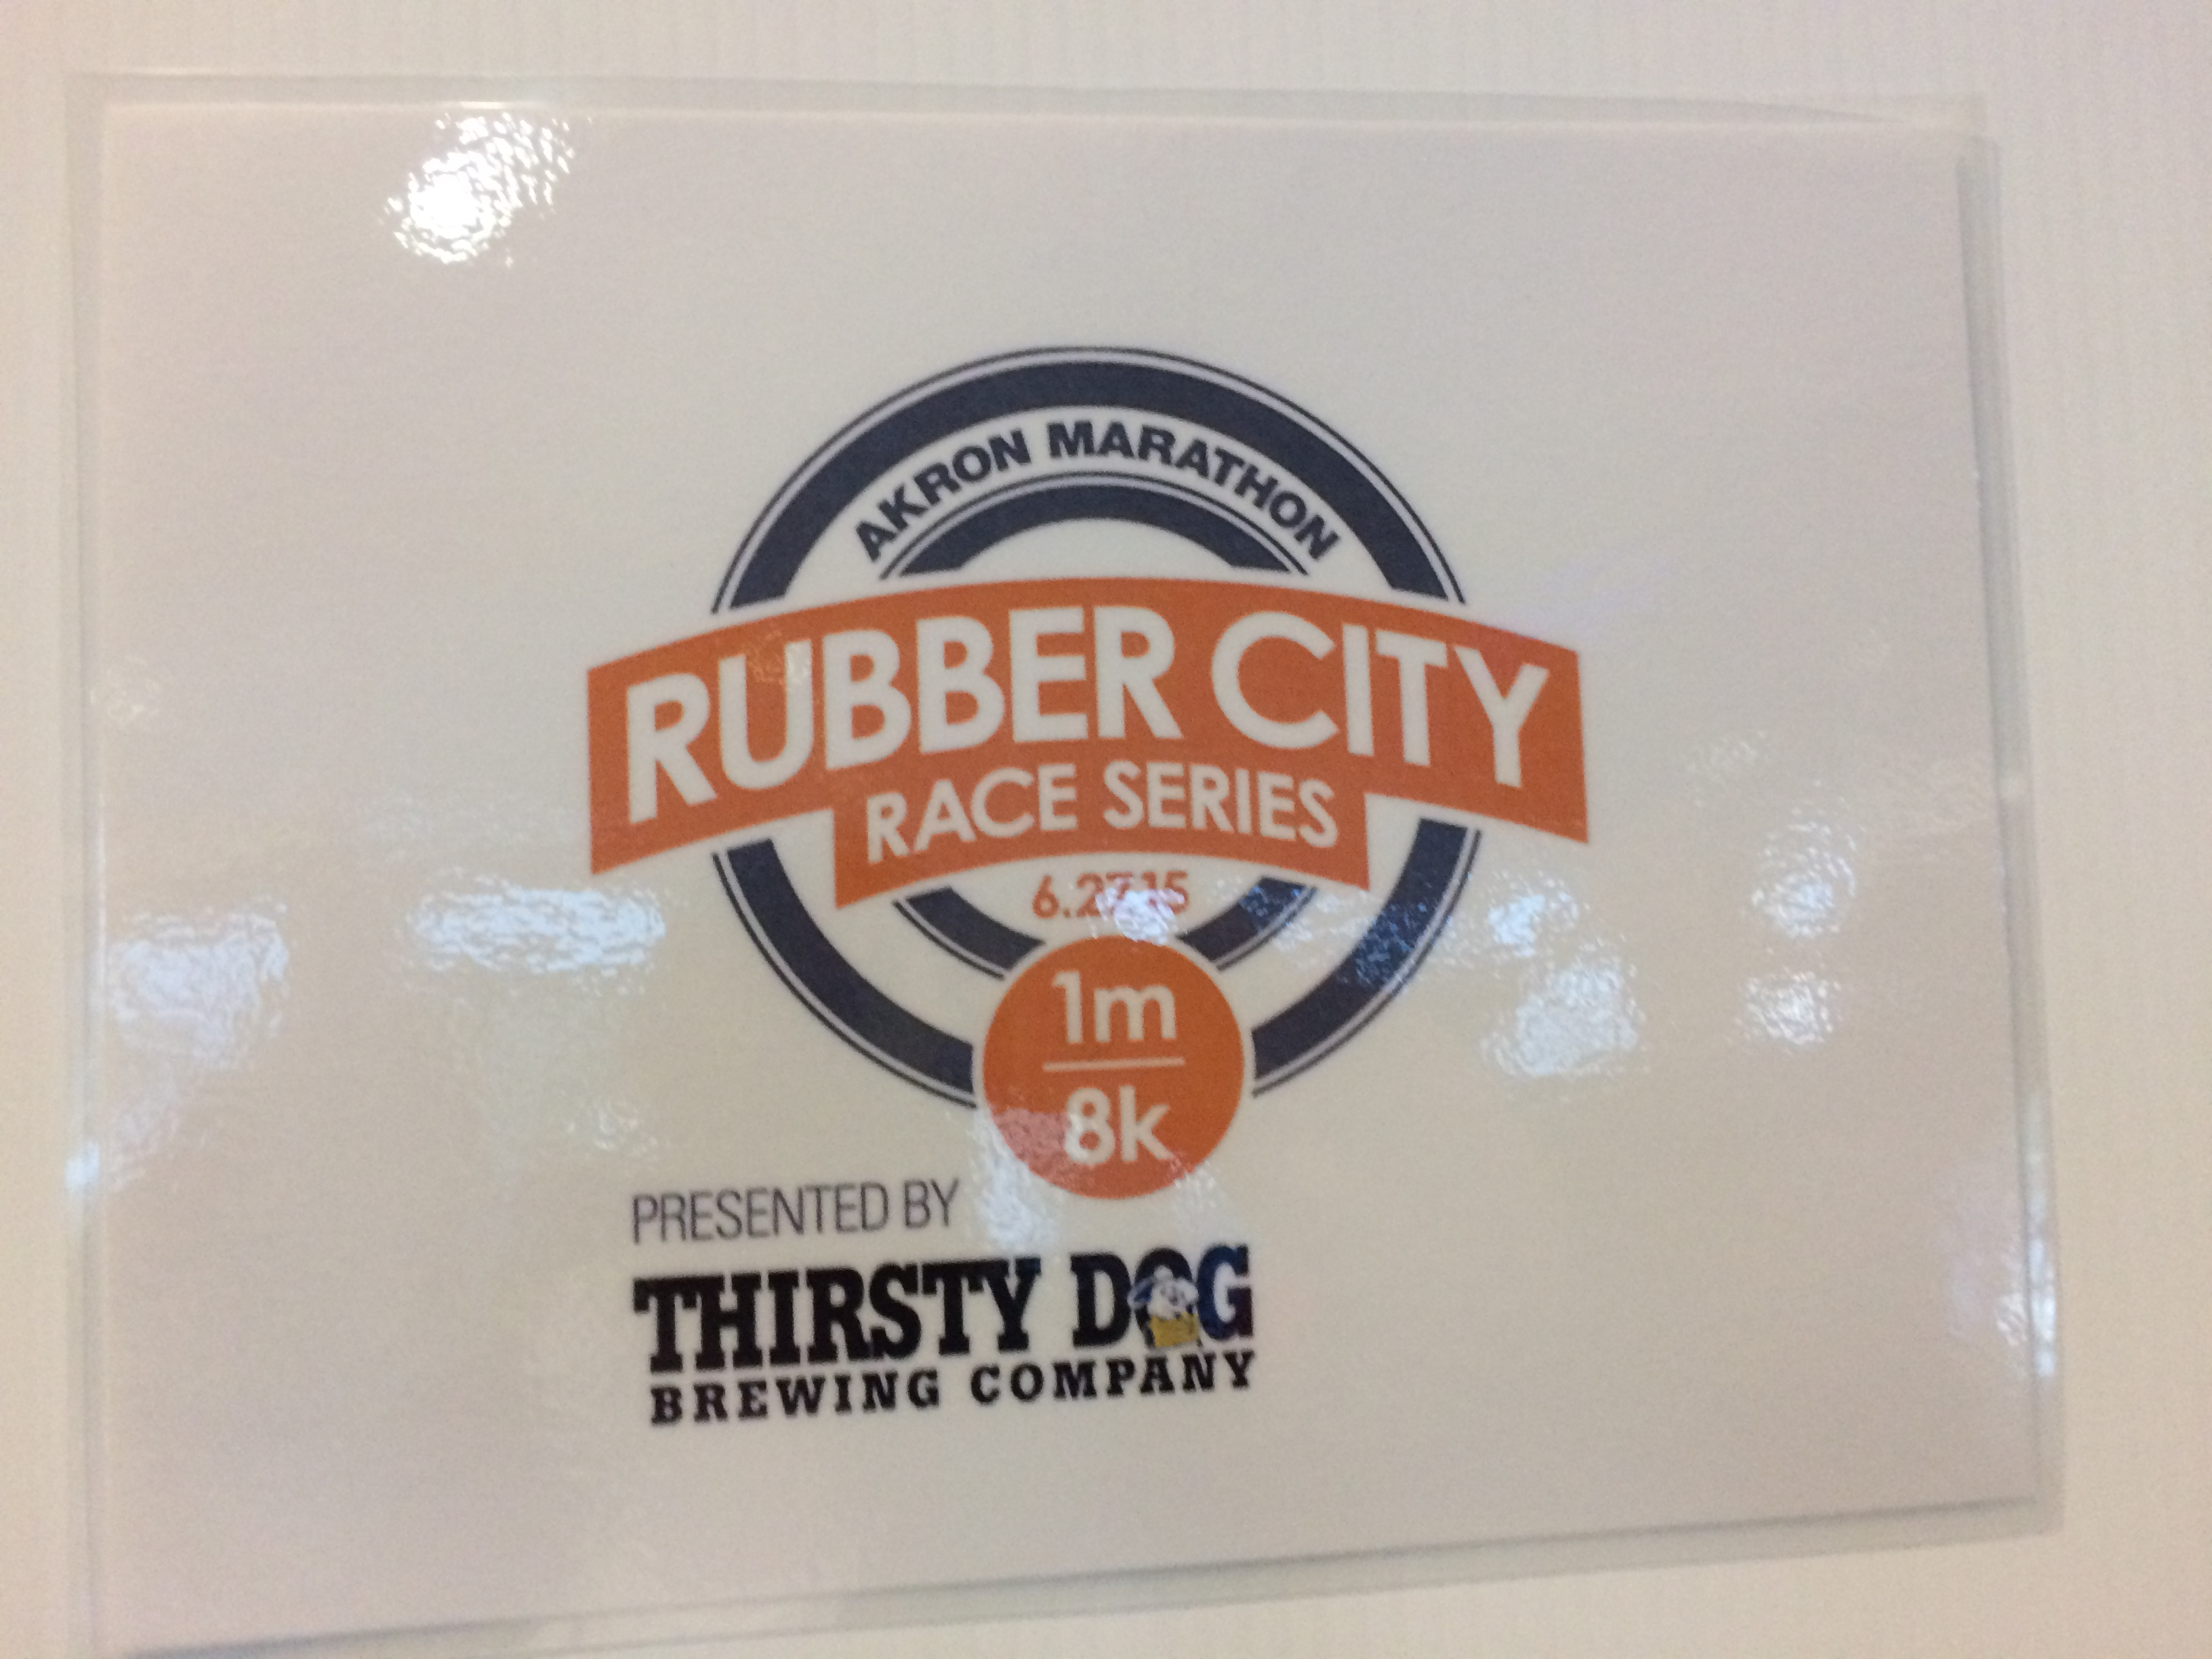 Rubber City Race Series: Thirsty Dog 8K